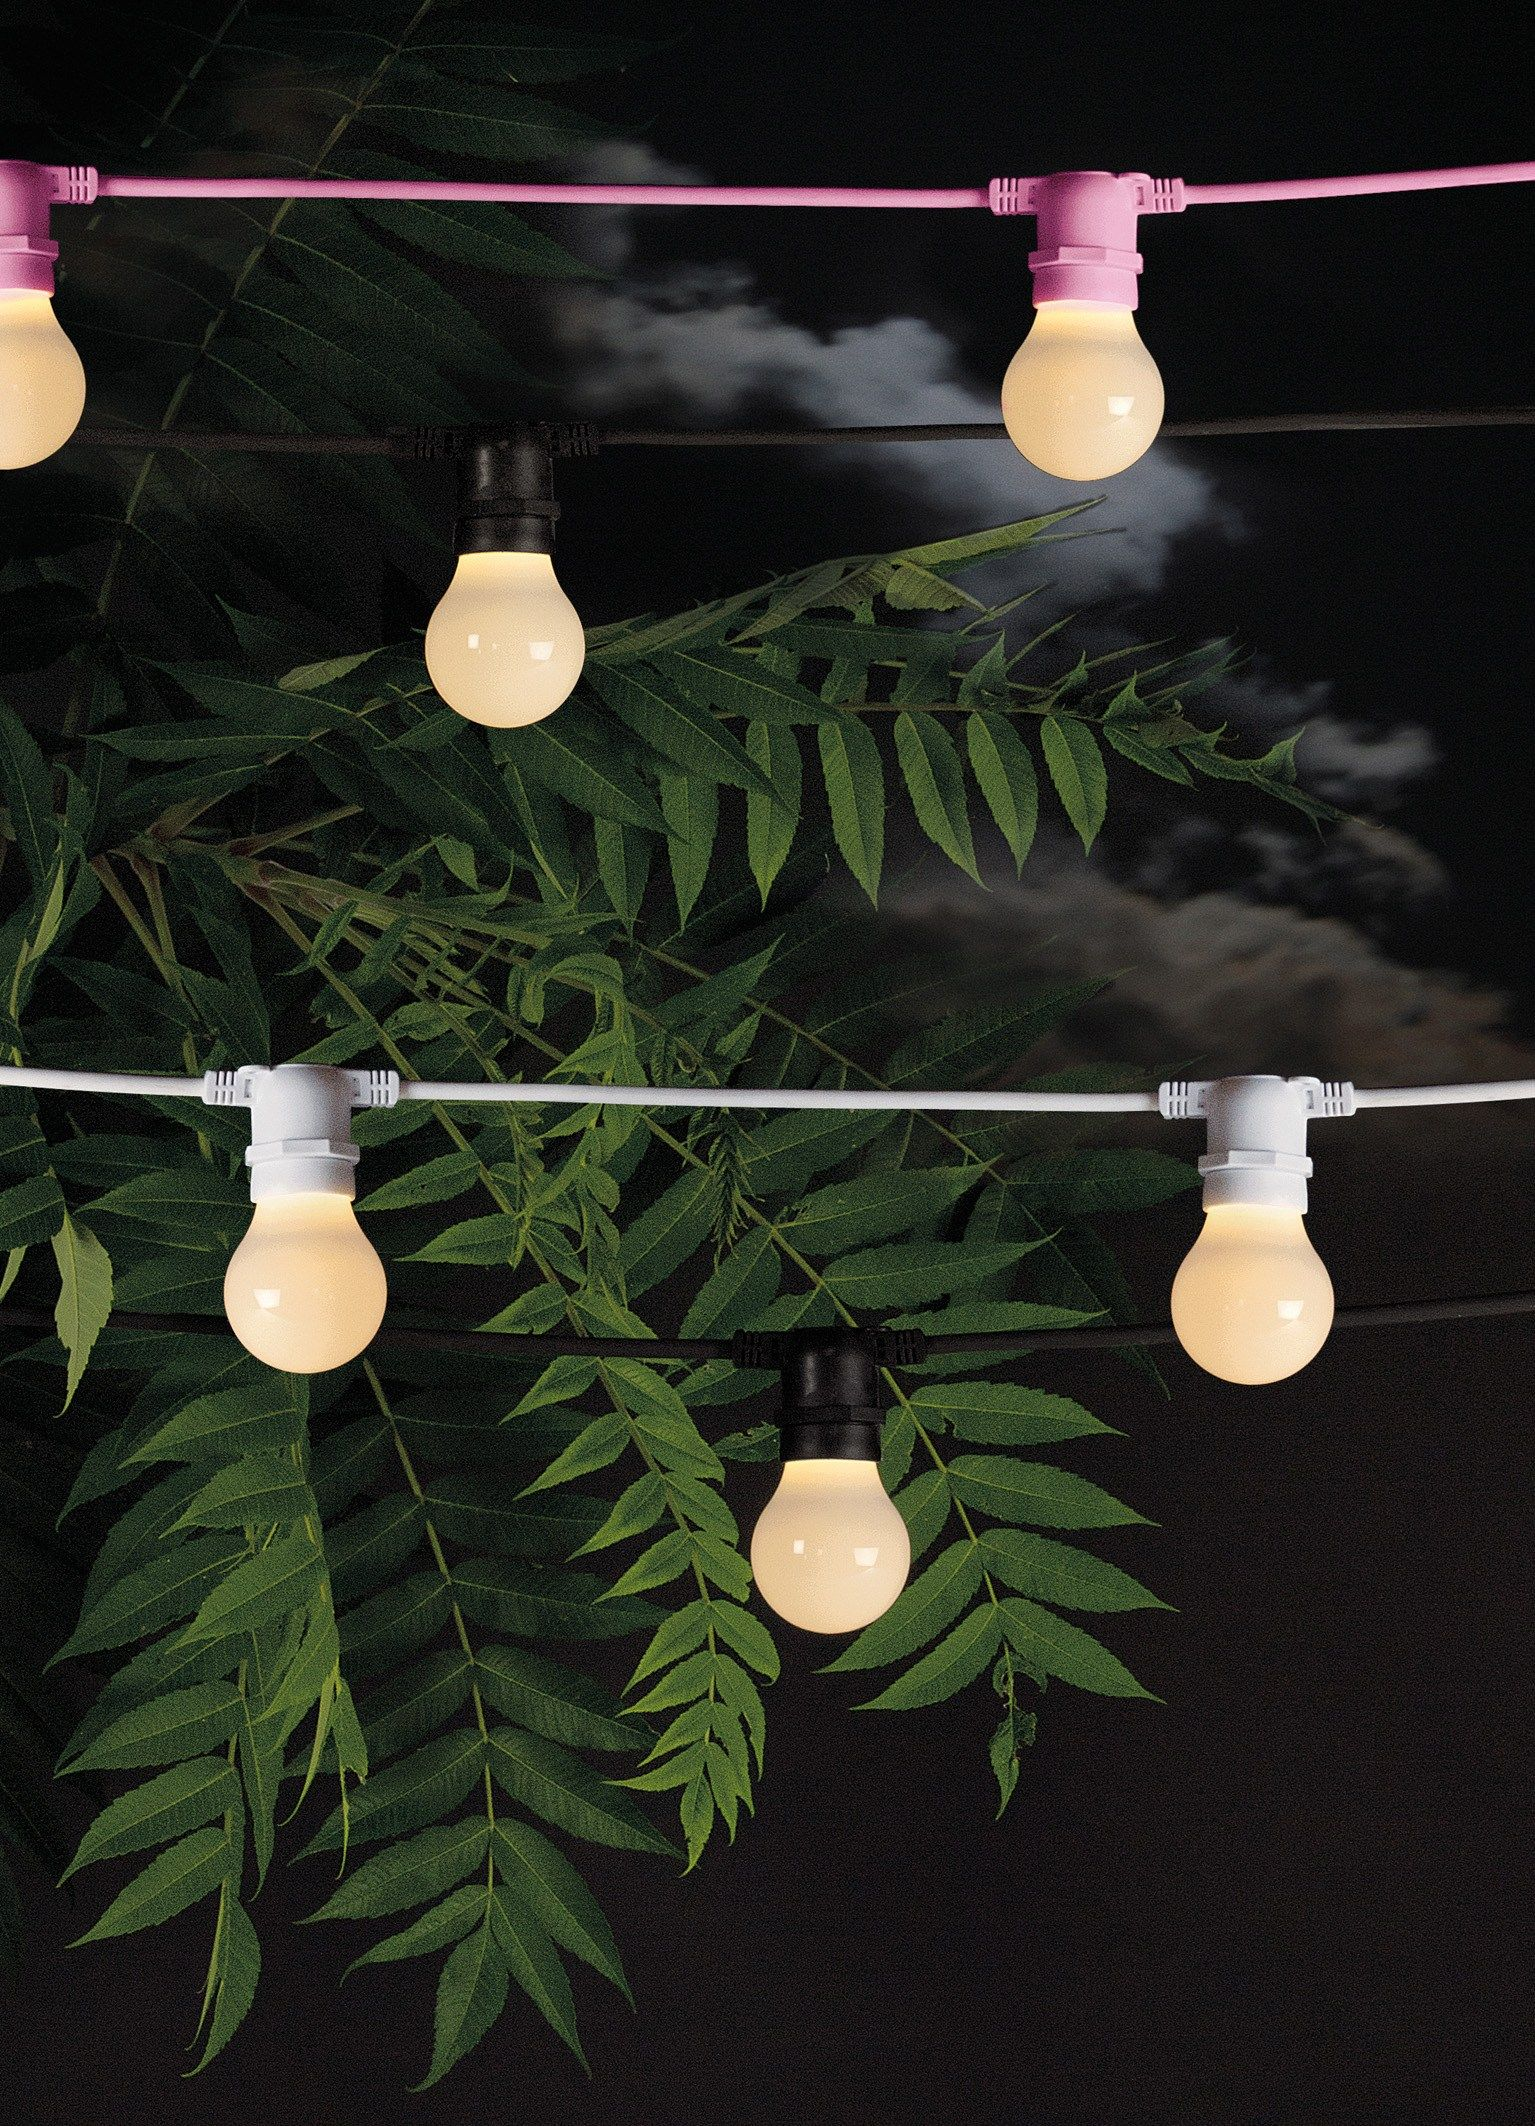 Outdoor lamps  Rope systems BELLA VISTA by Seletti  design Selab  Eclairage et